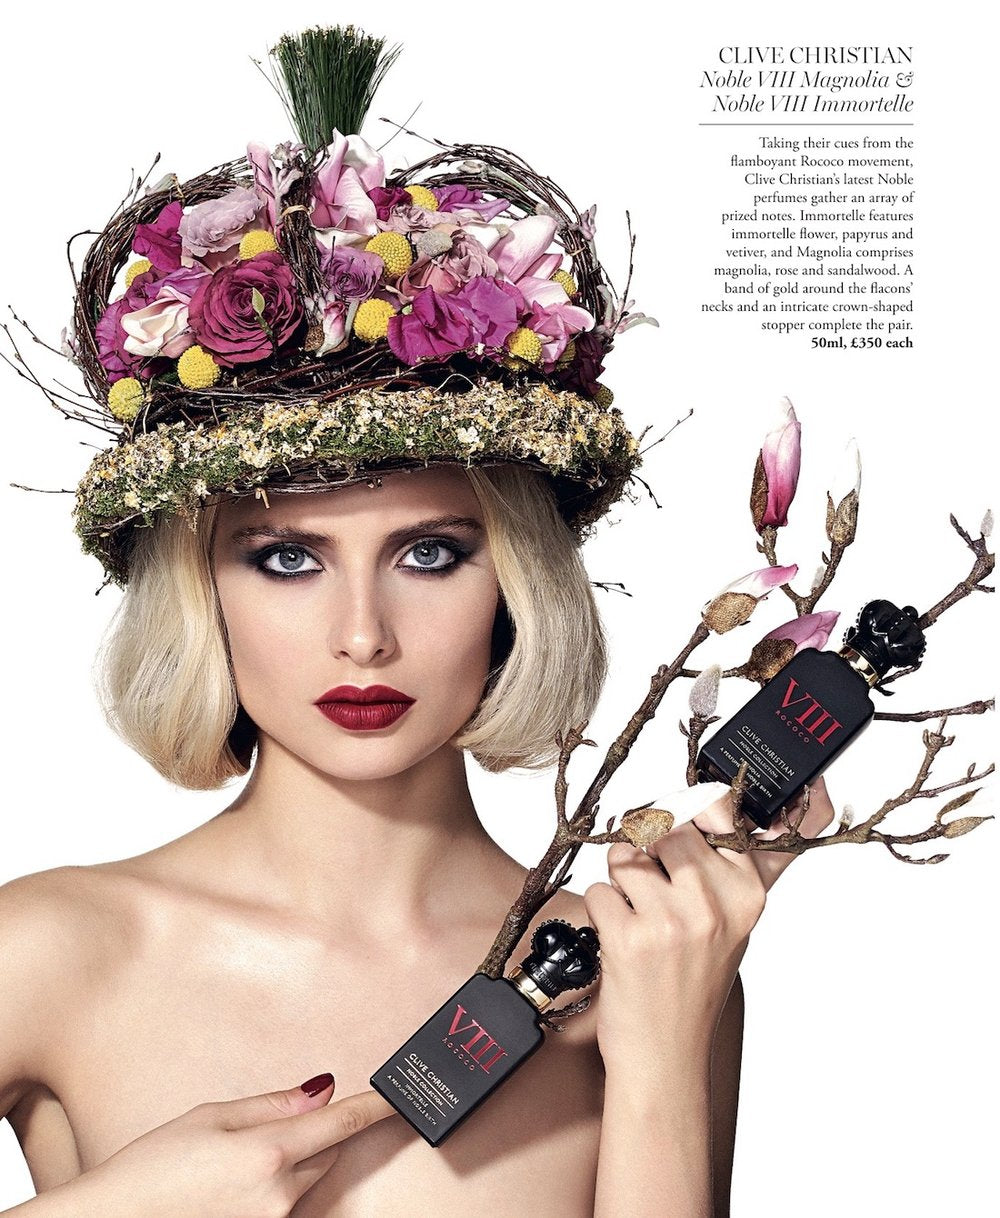 Fragrances styled by Neill Strain florals for Harrods Magazine